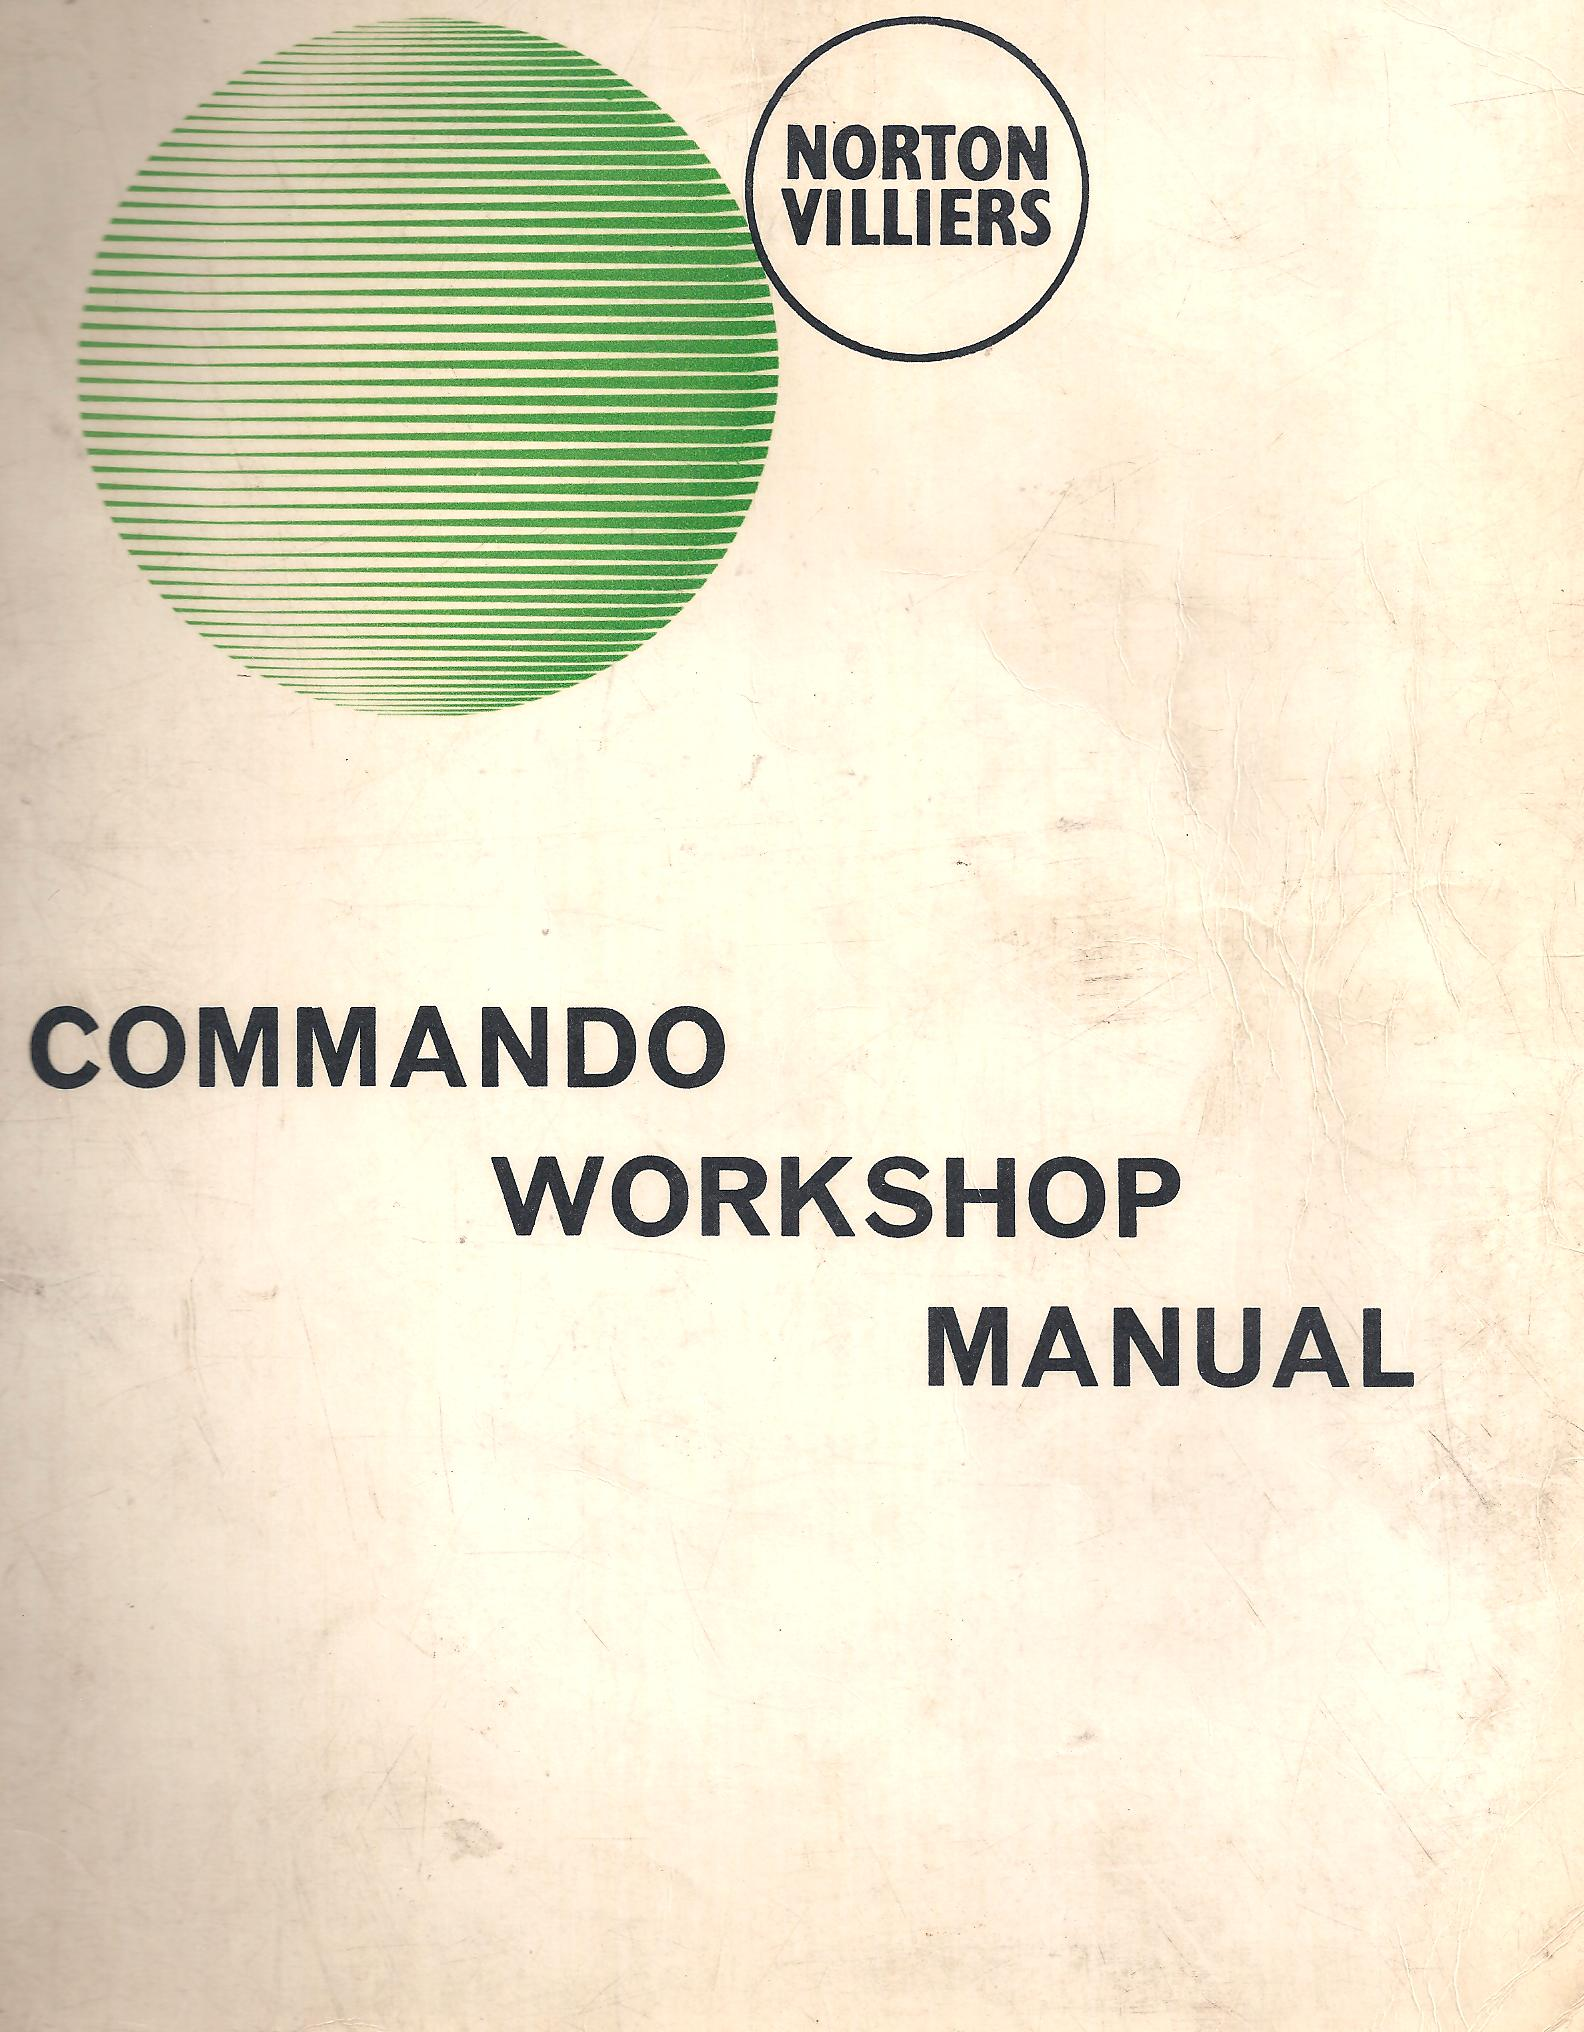 Commando Workshop Manual